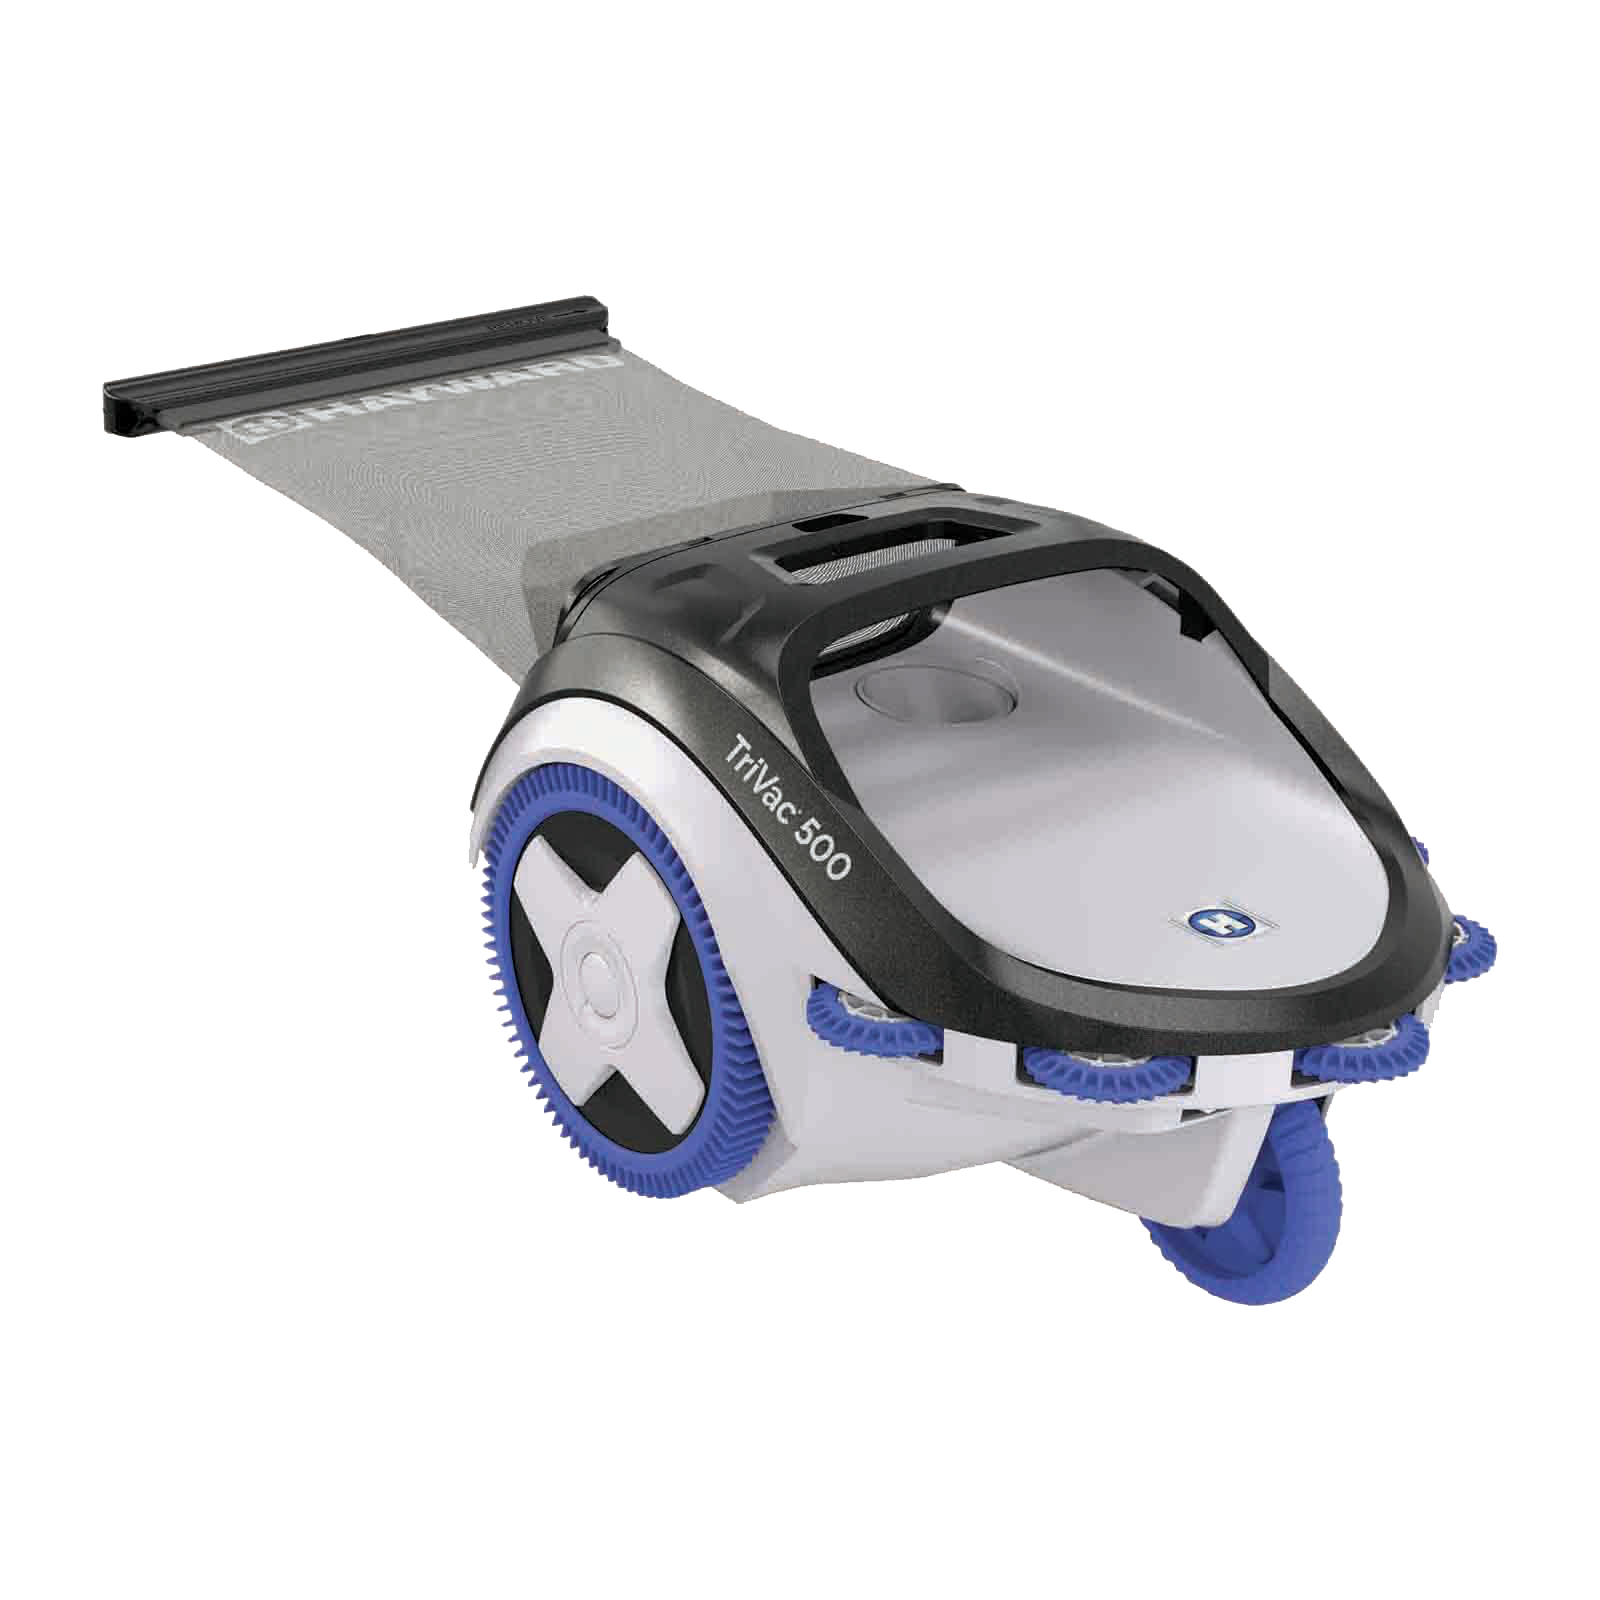 TriVac™ 500 Cleaner